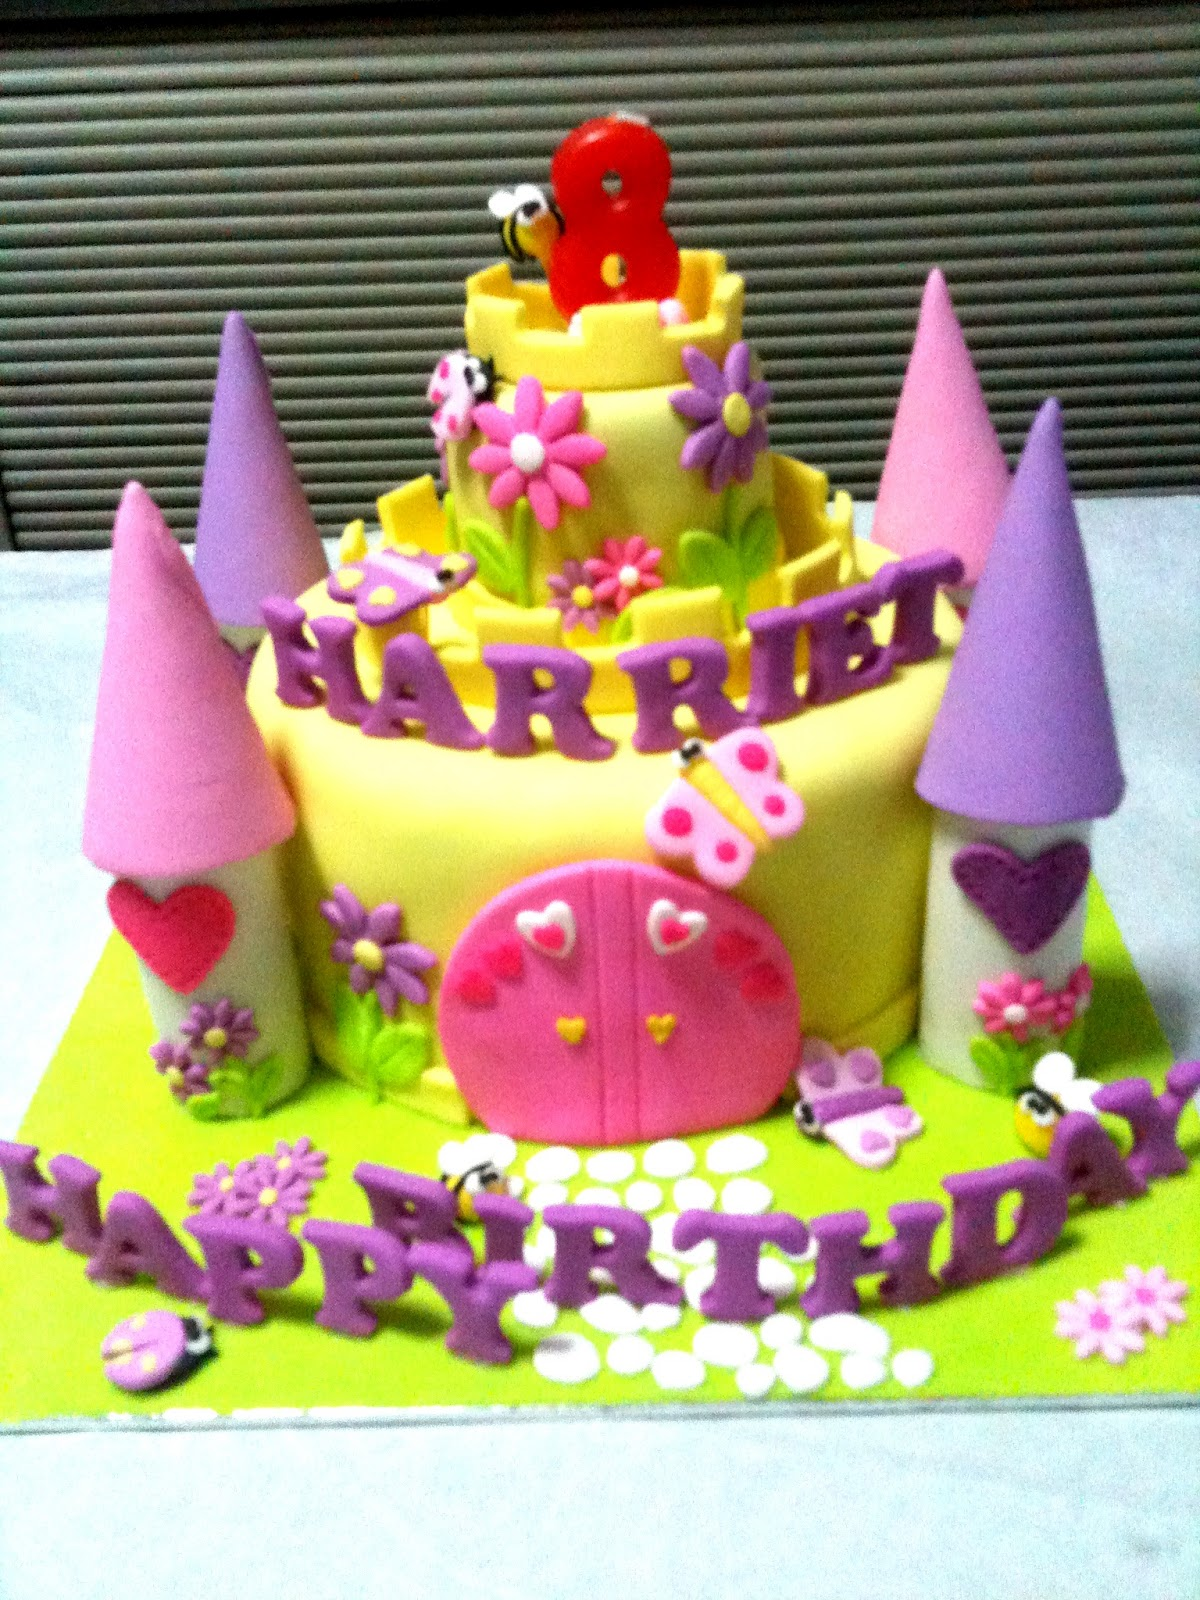 8Th Birthday Cake Ideas http://ovencreations.blogspot.com/2012/03/happy-8th-birthday-harriet.html